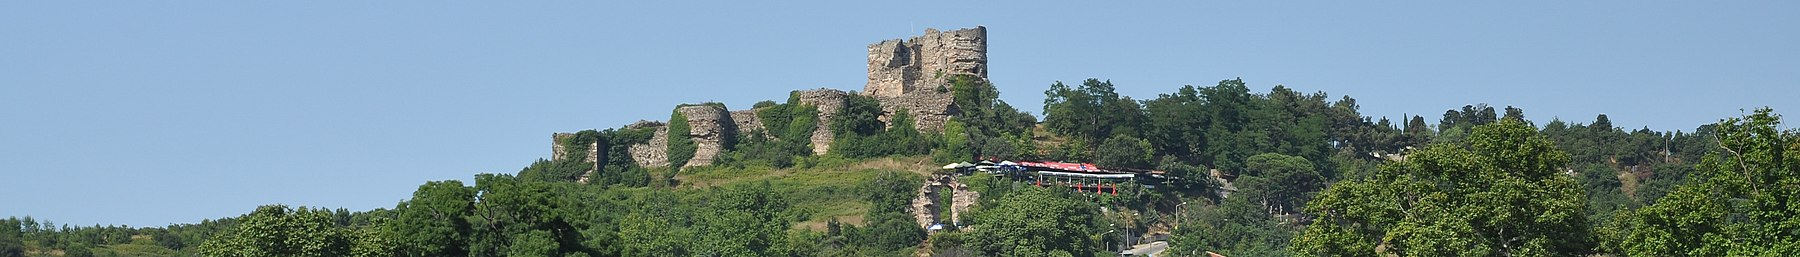 Yoros Castle, which has been proudly watching the mouth of the Black Sea over the Bosphorus since the 13th century